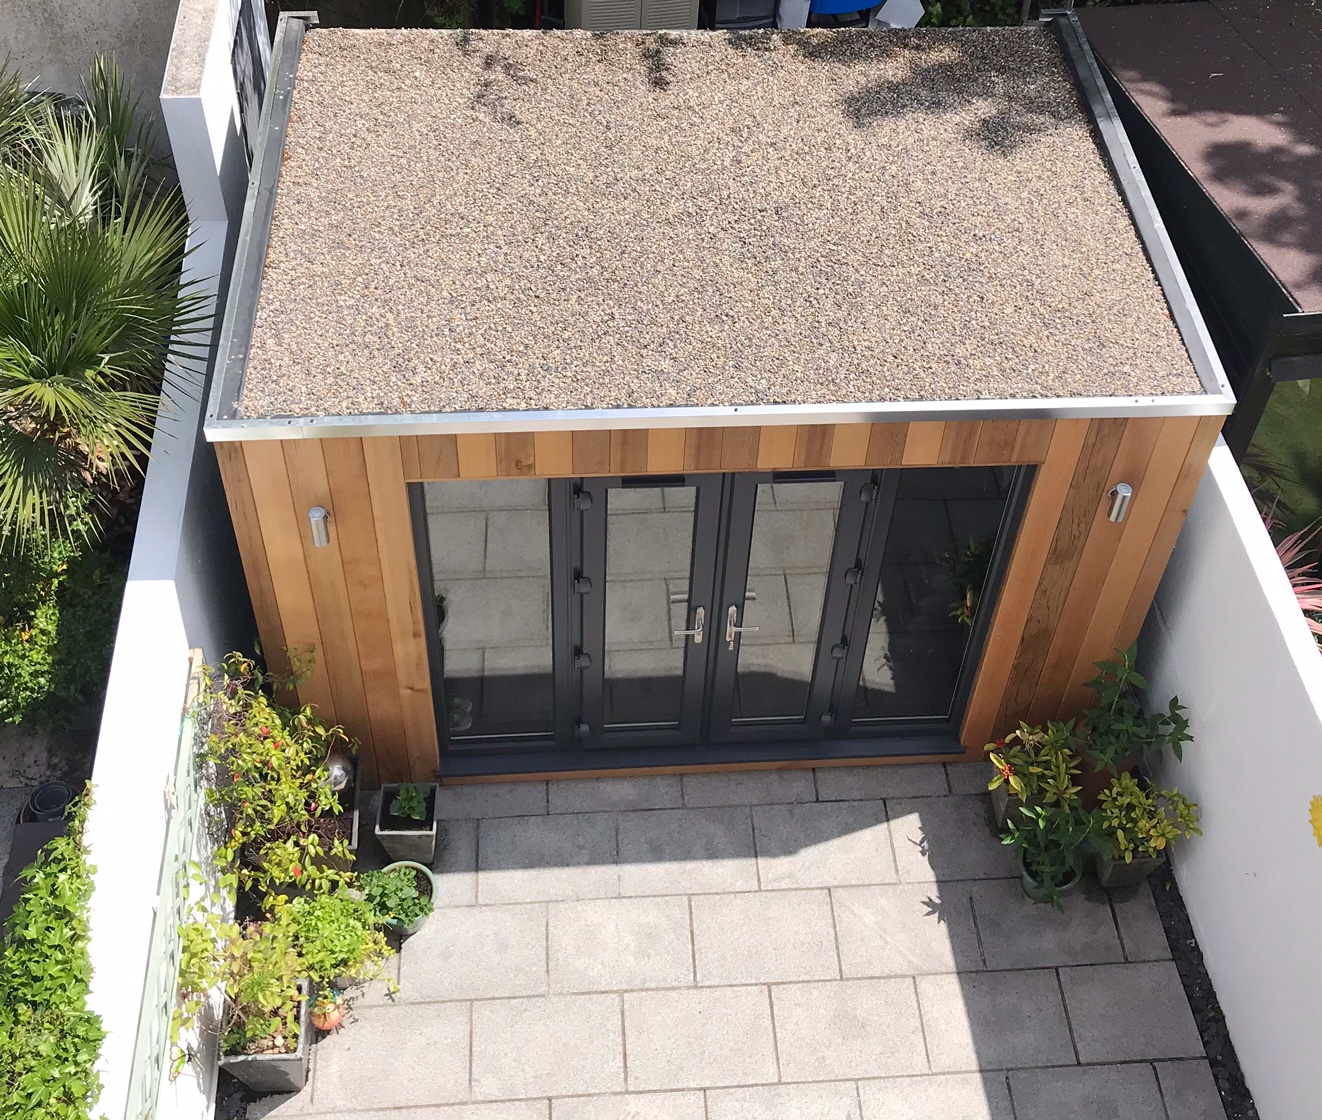 Cubed studio with shingle finish from above.